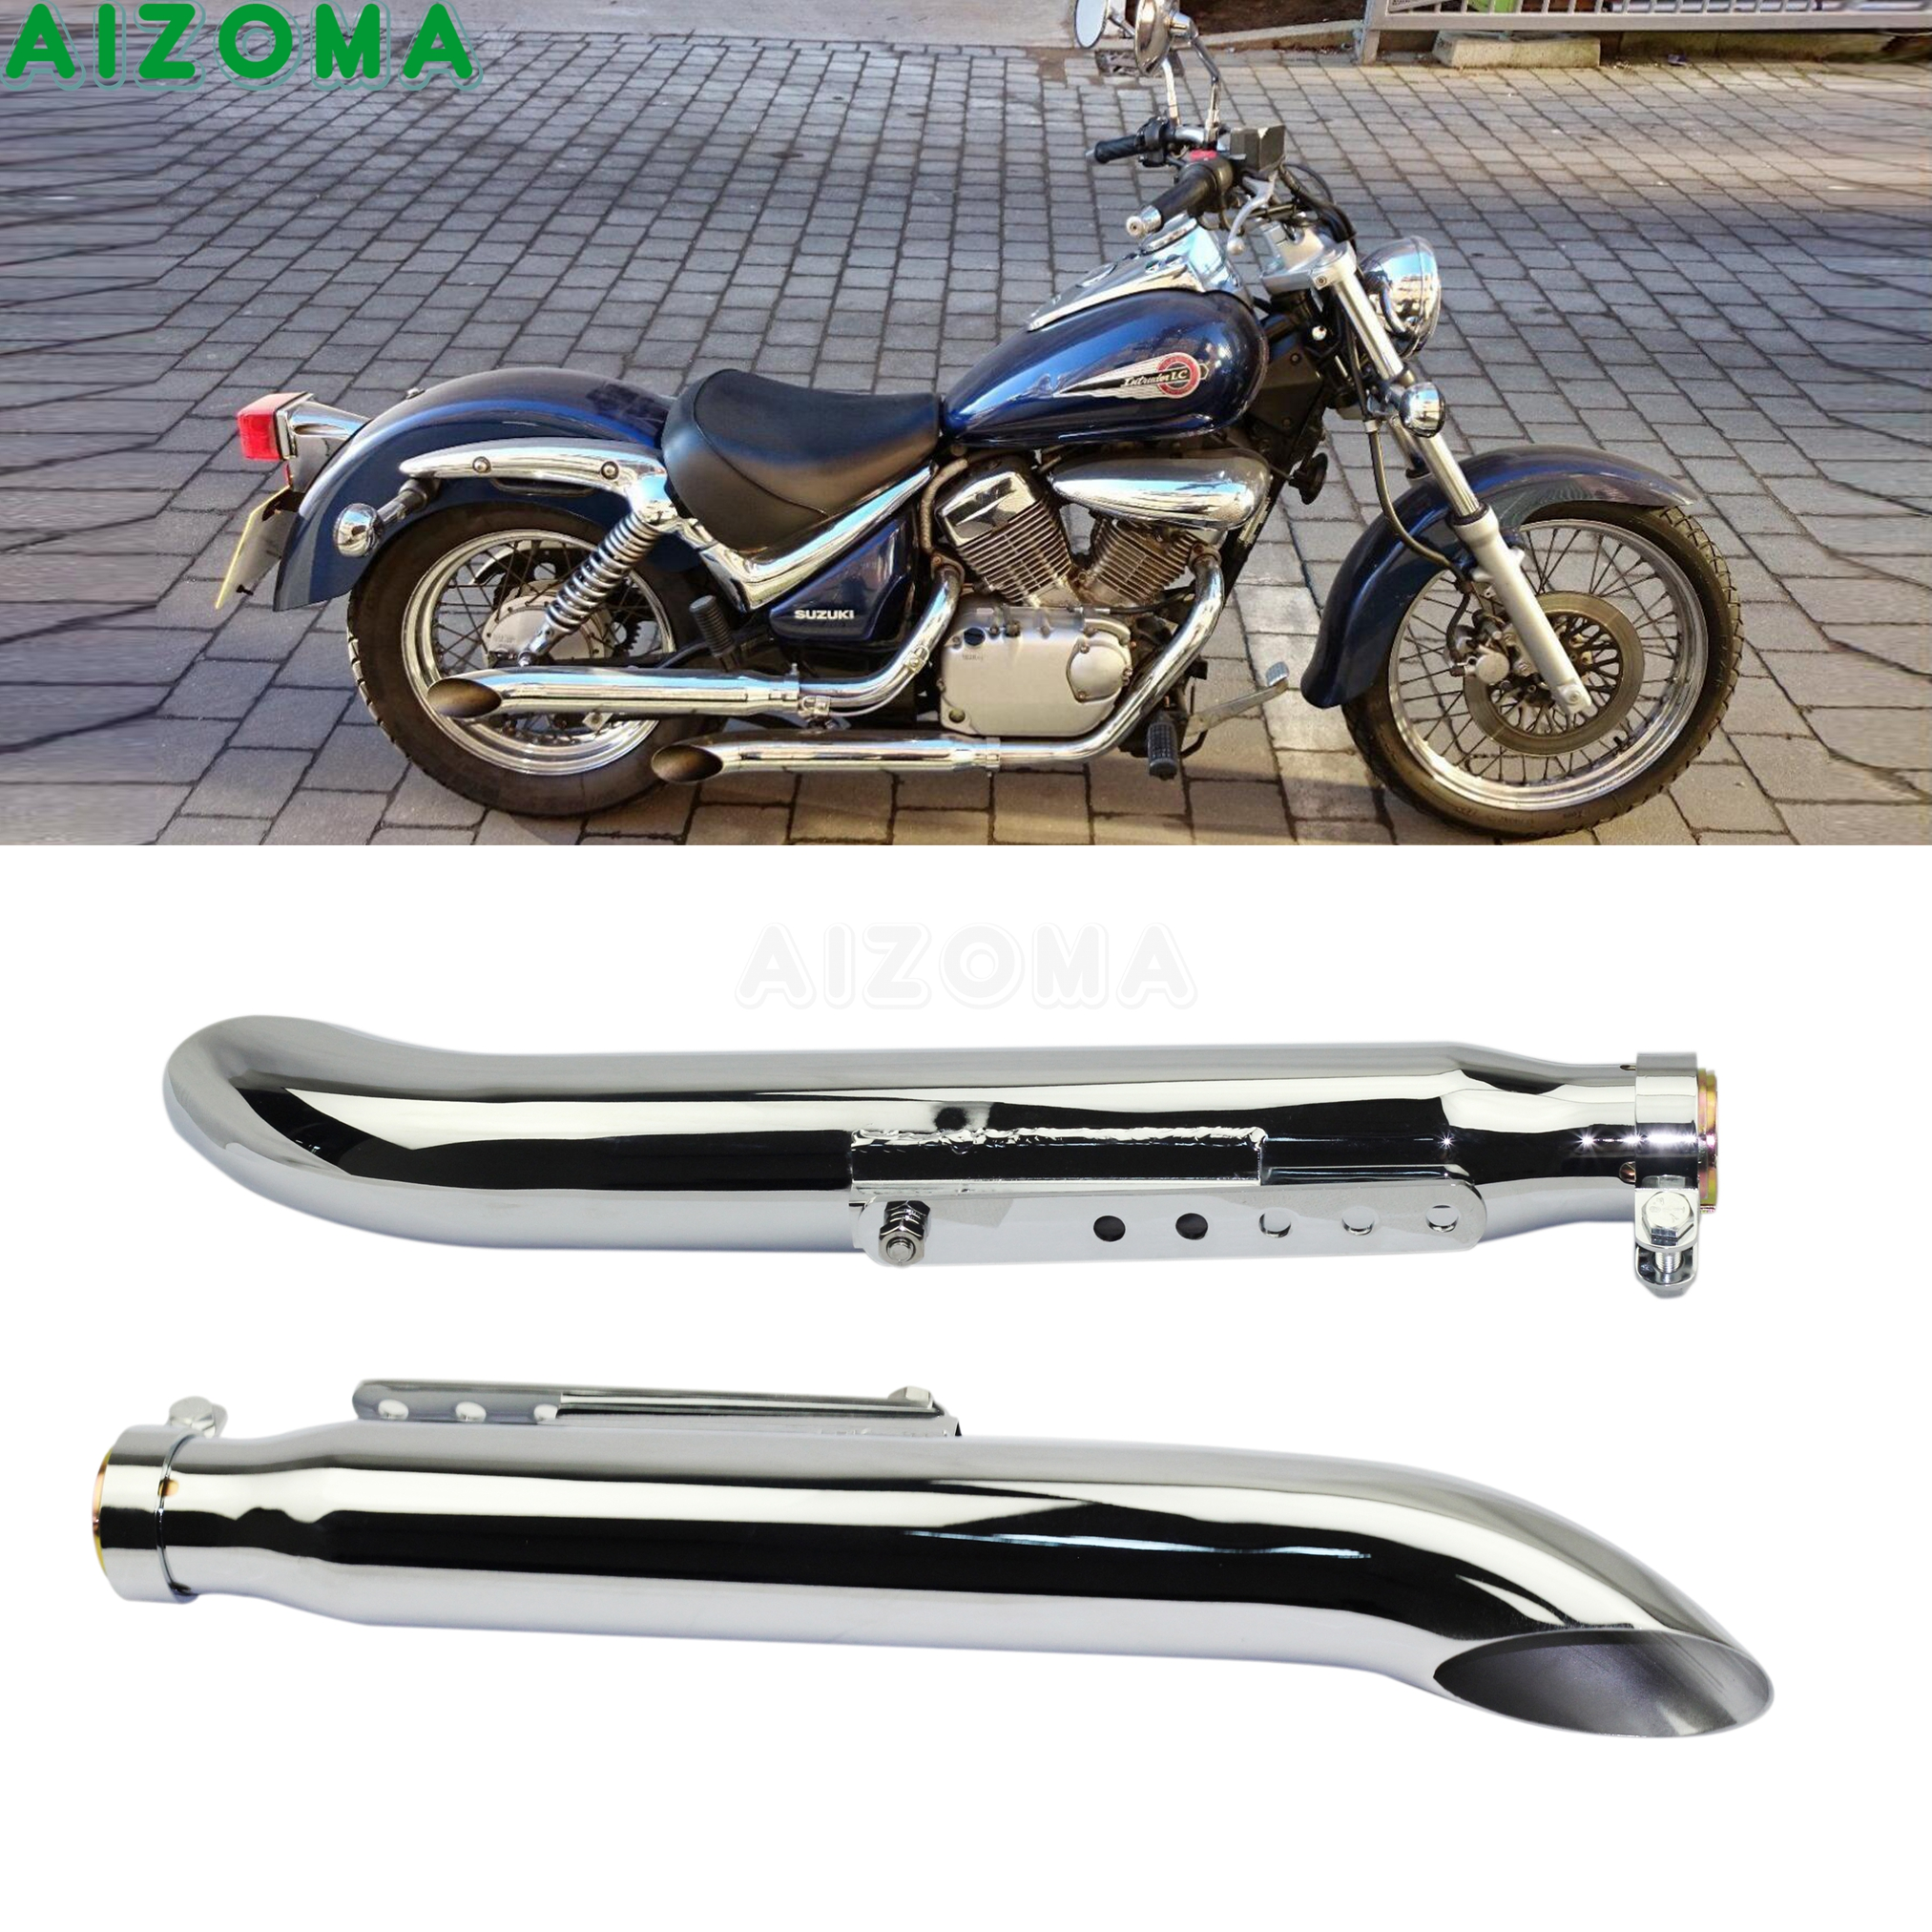 1 Pair Motorcycle Exhaust Muffller Pipe for Harley Suzuki VL 125 800 1500 Intruder Bobber Chrome